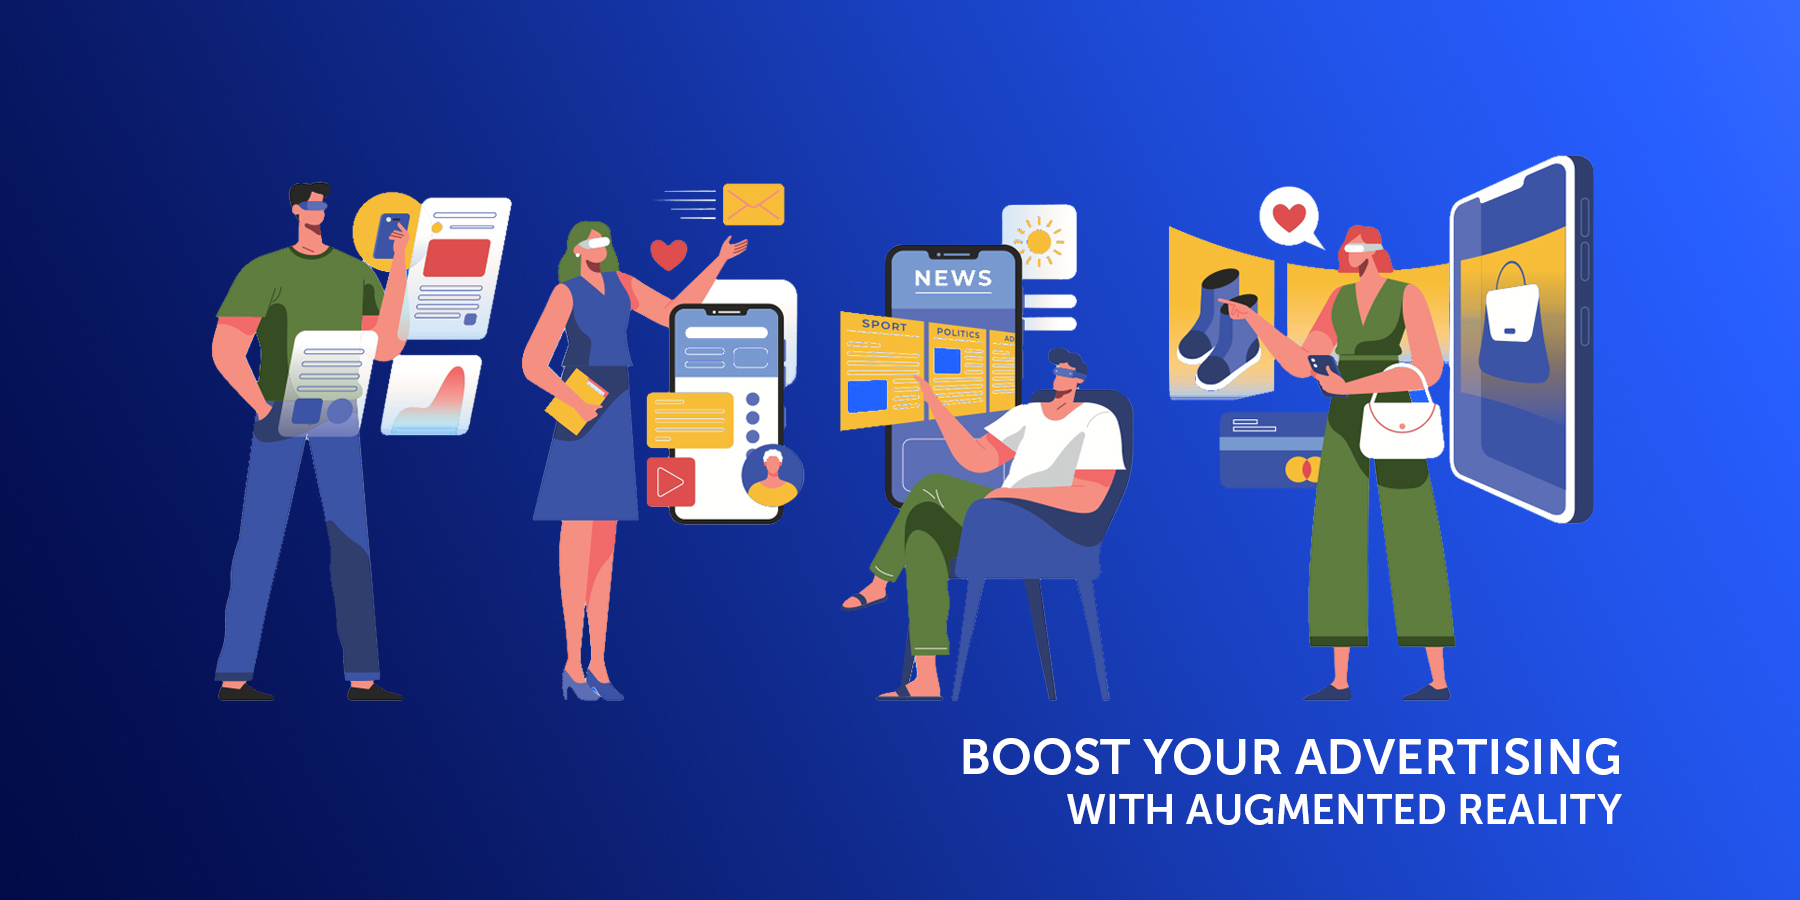 Boost Your Advertising with Augmented Reality